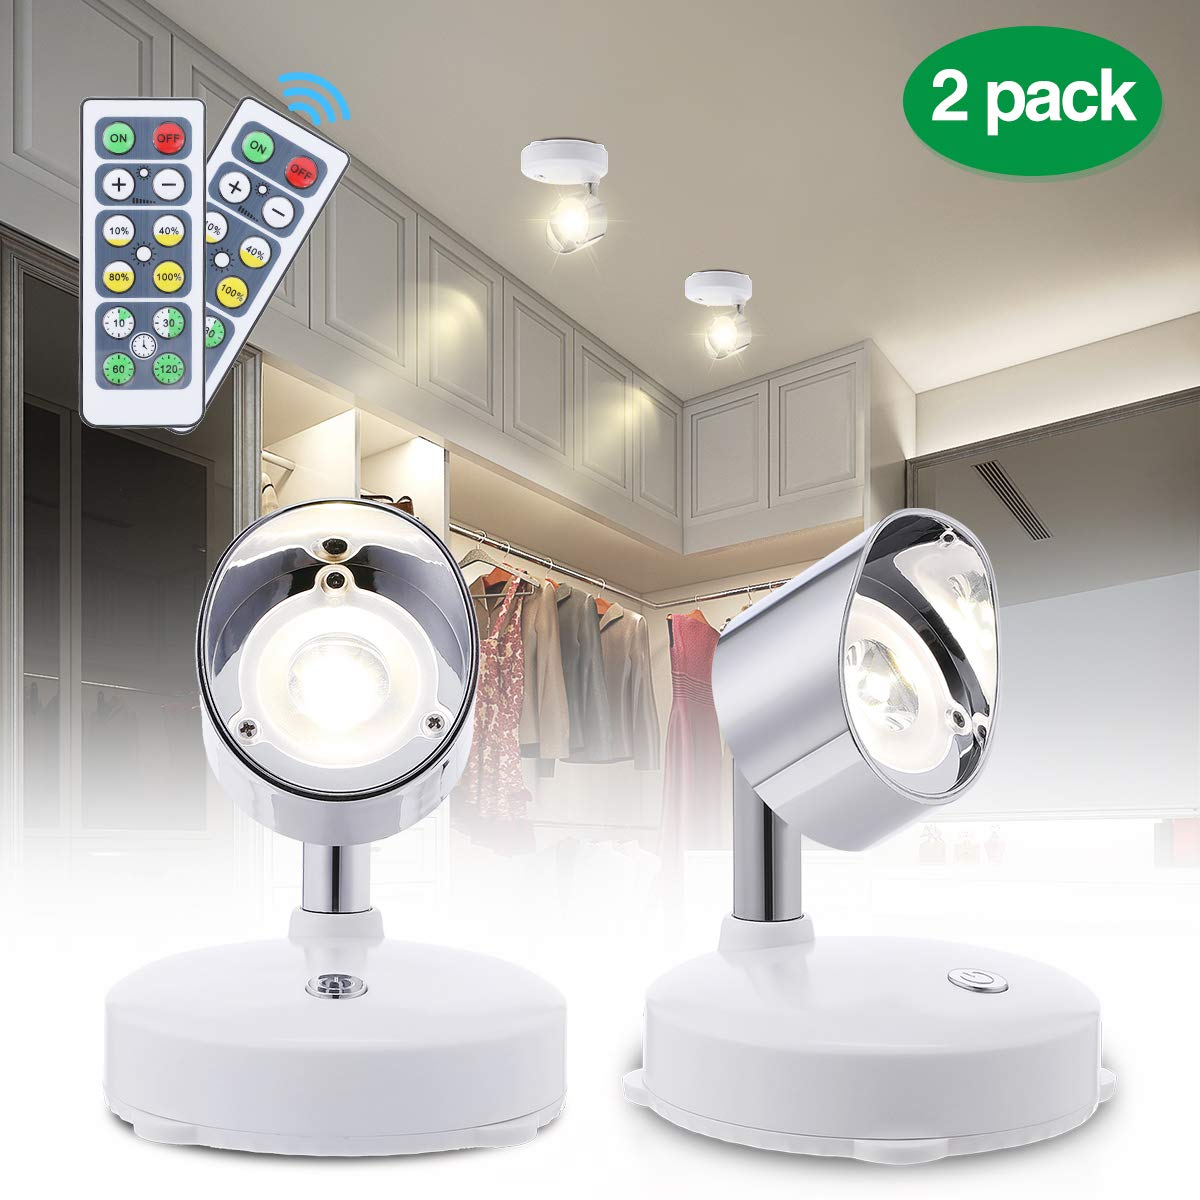 Elfeland LED Closet Lights LED Spotlight Wireless Puck Lights with Remote Battery Operated Accent Lights Dimmable Cabinet Lights with Rotatable Light Head Stick on Anywhere Indoor,Warm White(2 Pack)